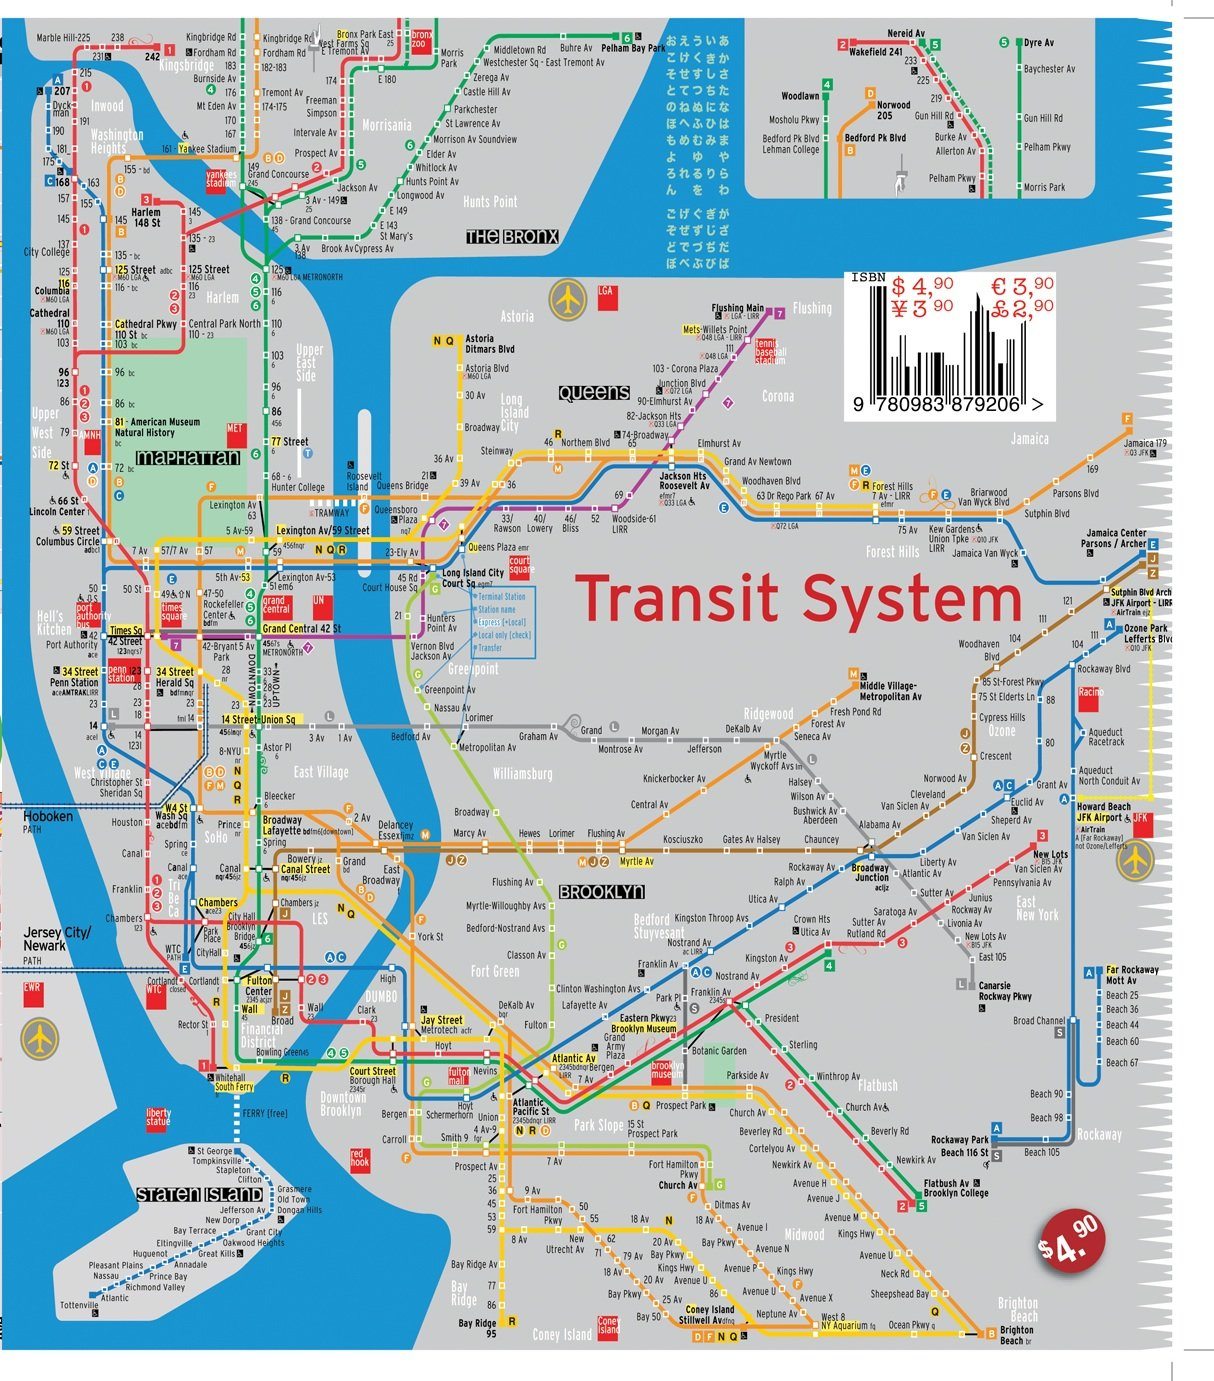 terramaps nyc manhattan street and subway map  waterproof  ar augmentedreality alberto michieli  amazoncom books. terramaps nyc manhattan street and subway map  waterproof  ar